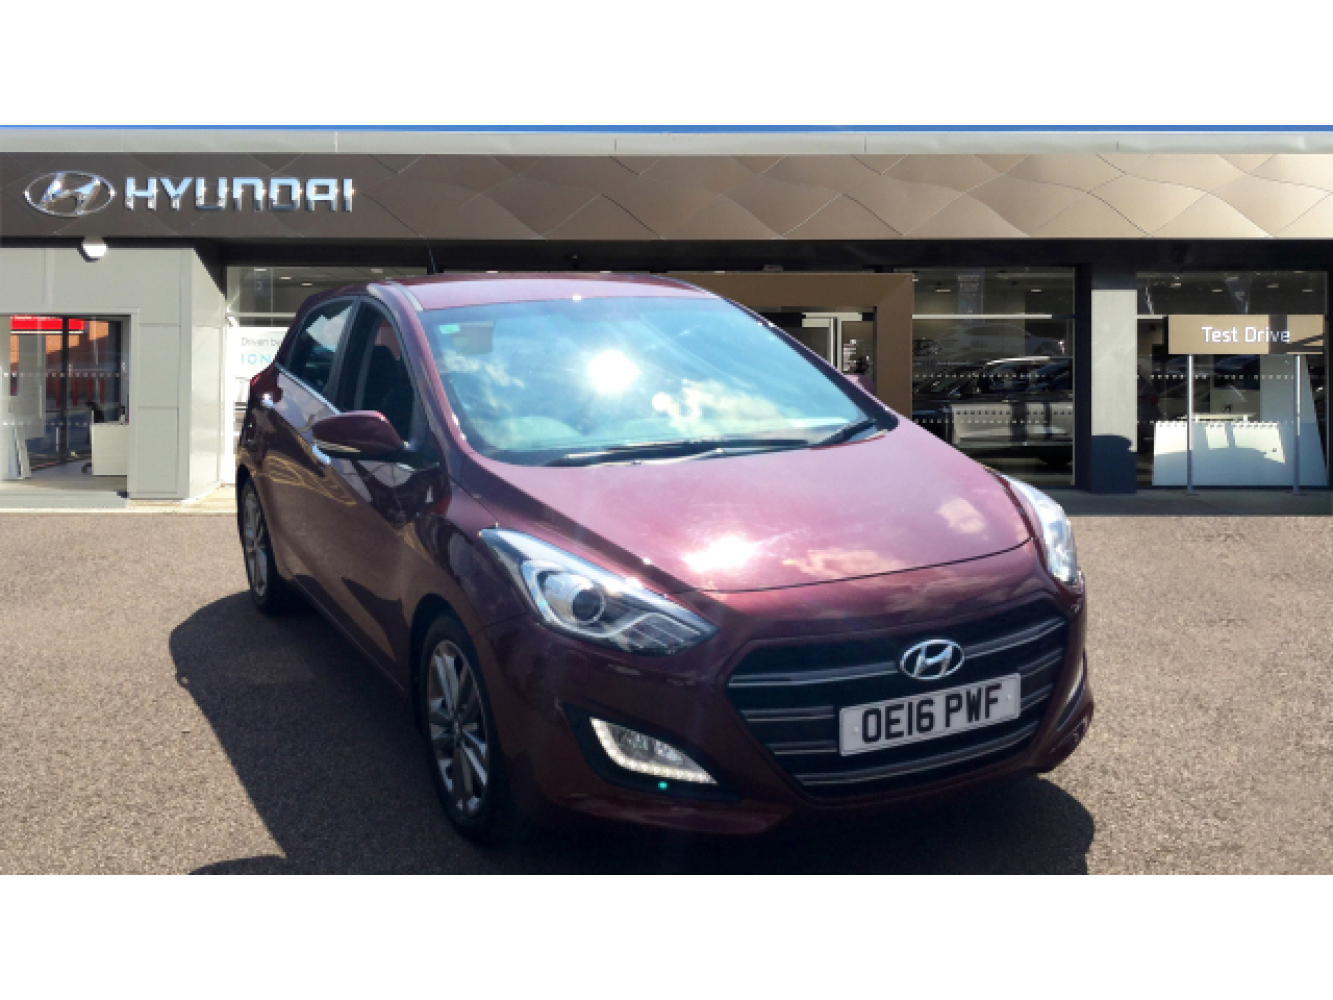 used hyundai i30 1 6 crdi 136 premium 5dr diesel hatchback for sale newcastle infiniti. Black Bedroom Furniture Sets. Home Design Ideas